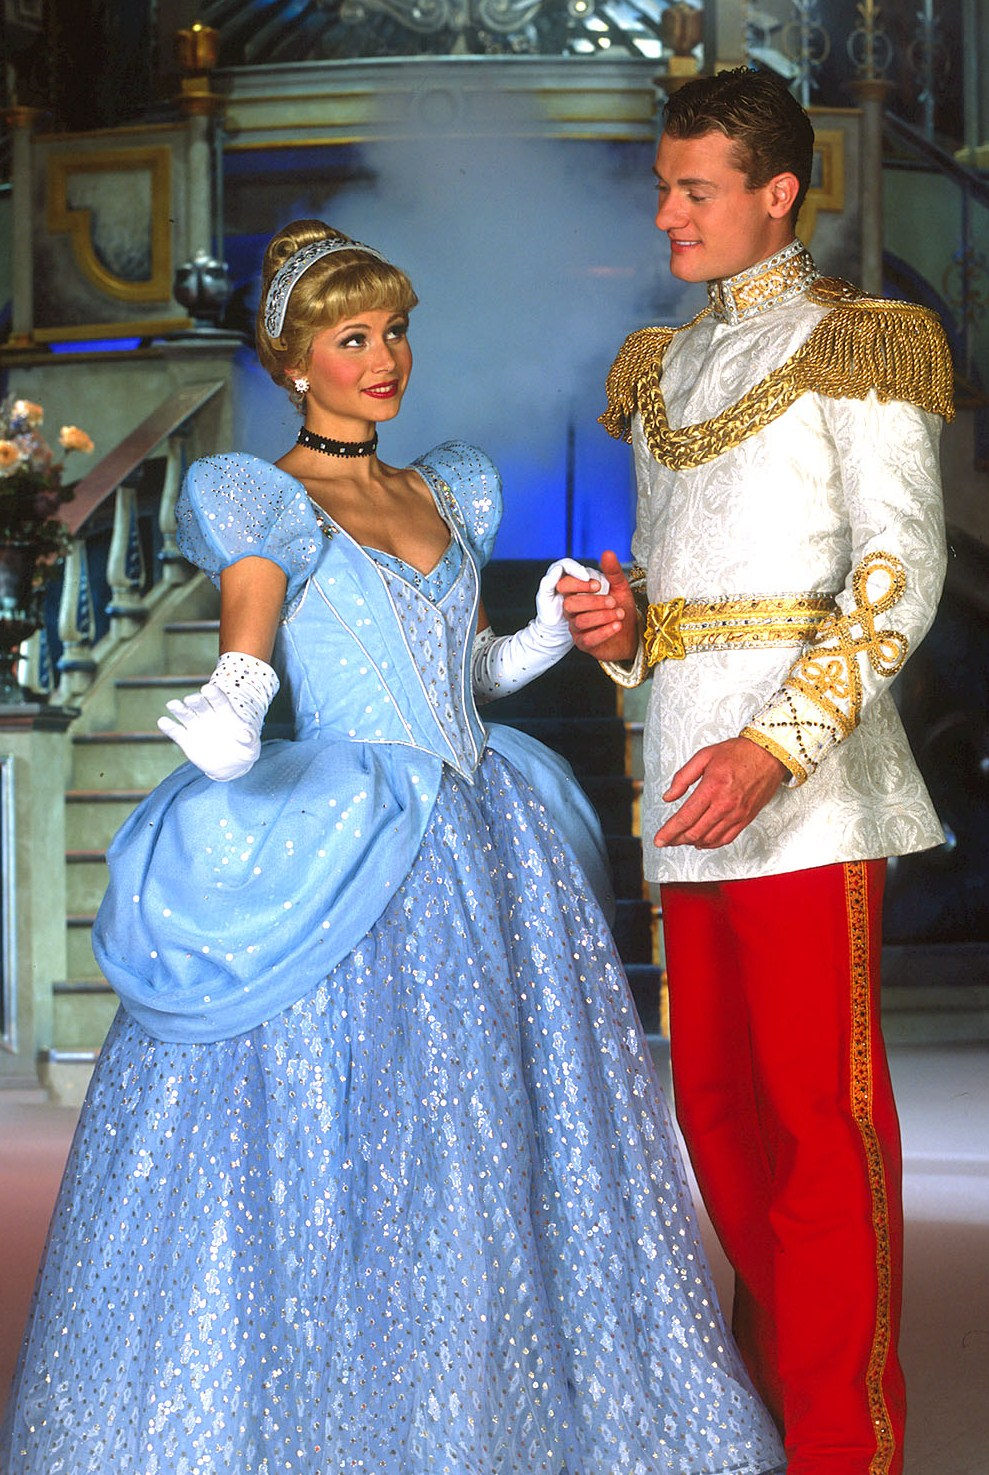 https://i0.wp.com/images5.fanpop.com/image/photos/28500000/Cinderella-and-Charming-cinderella-and-prince-charming-28505817-989-1475.jpg